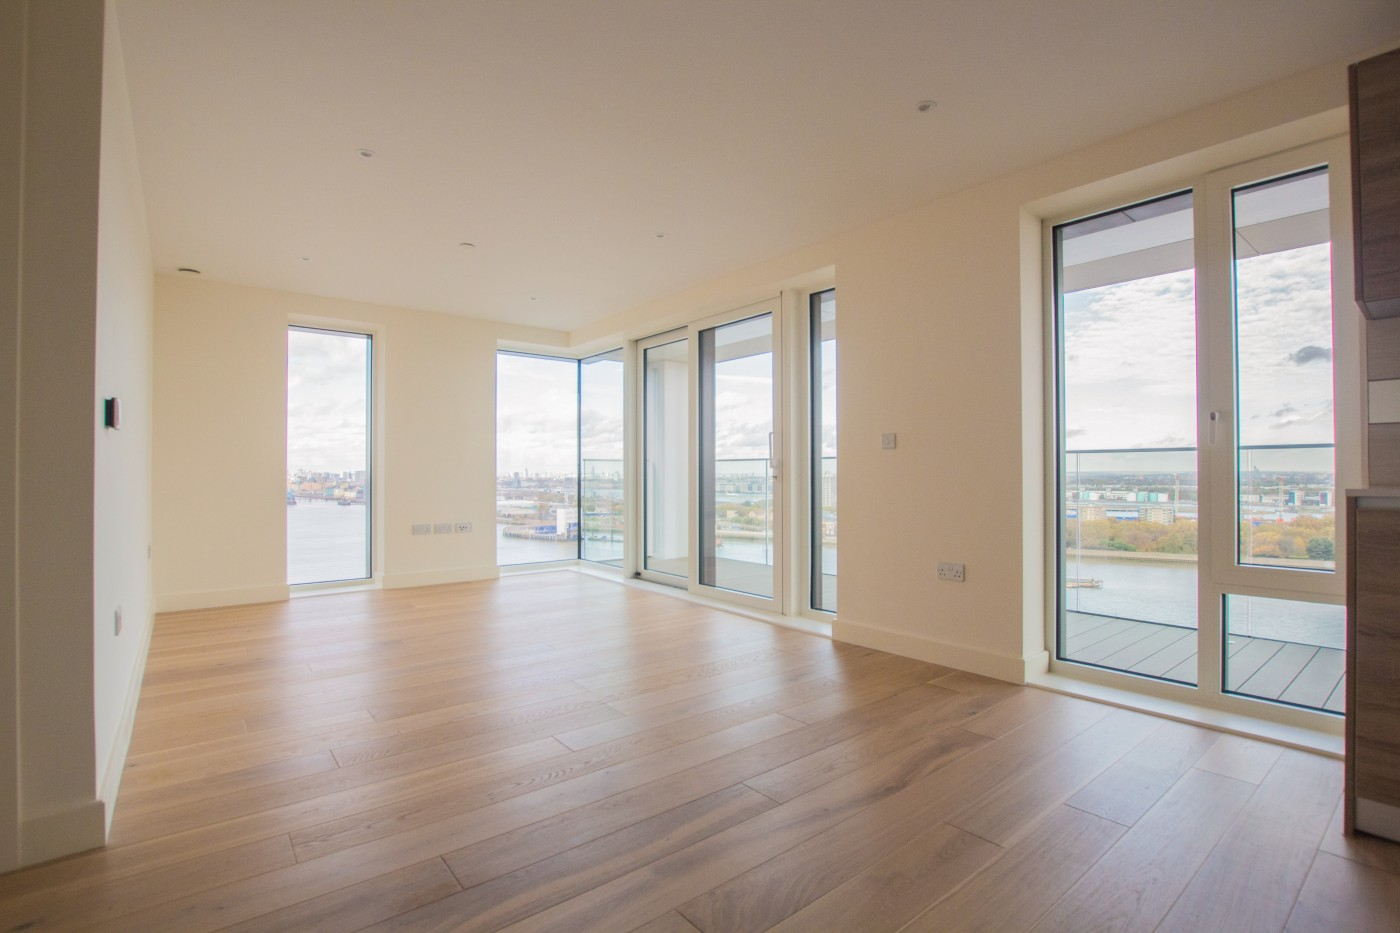 Images for Deveraux House, Royal Arsenal Riverside EAID: BID:88estateagency